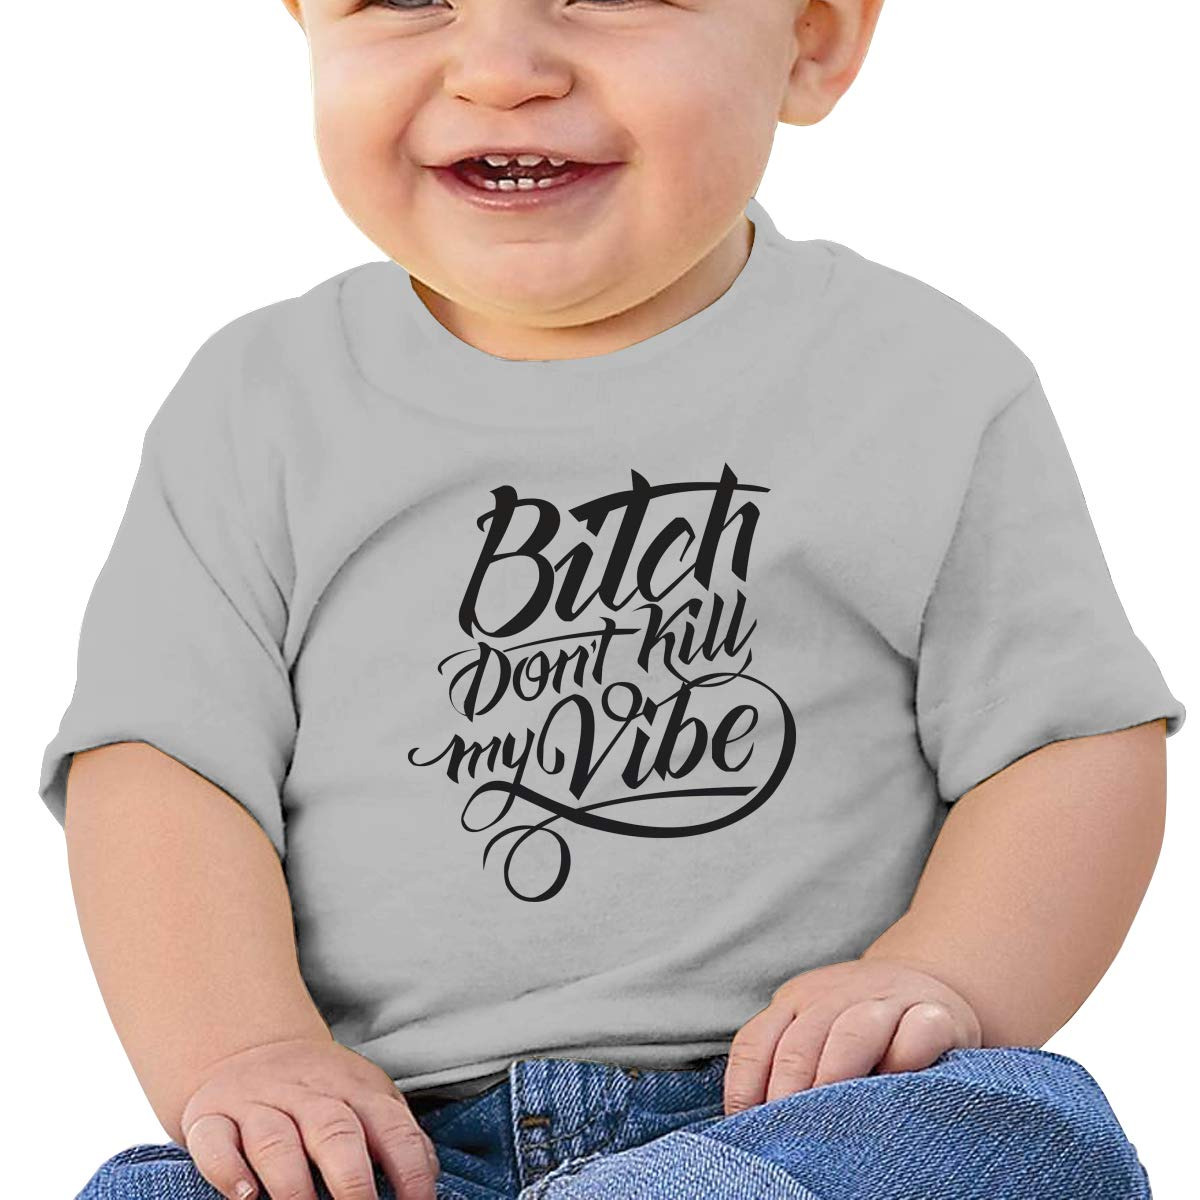 Bitch Dont Kill My Vibe Baby T-Shirt Kids Cotton T Shirts Short Sleeve Graphic Tees for 6M-2T Baby